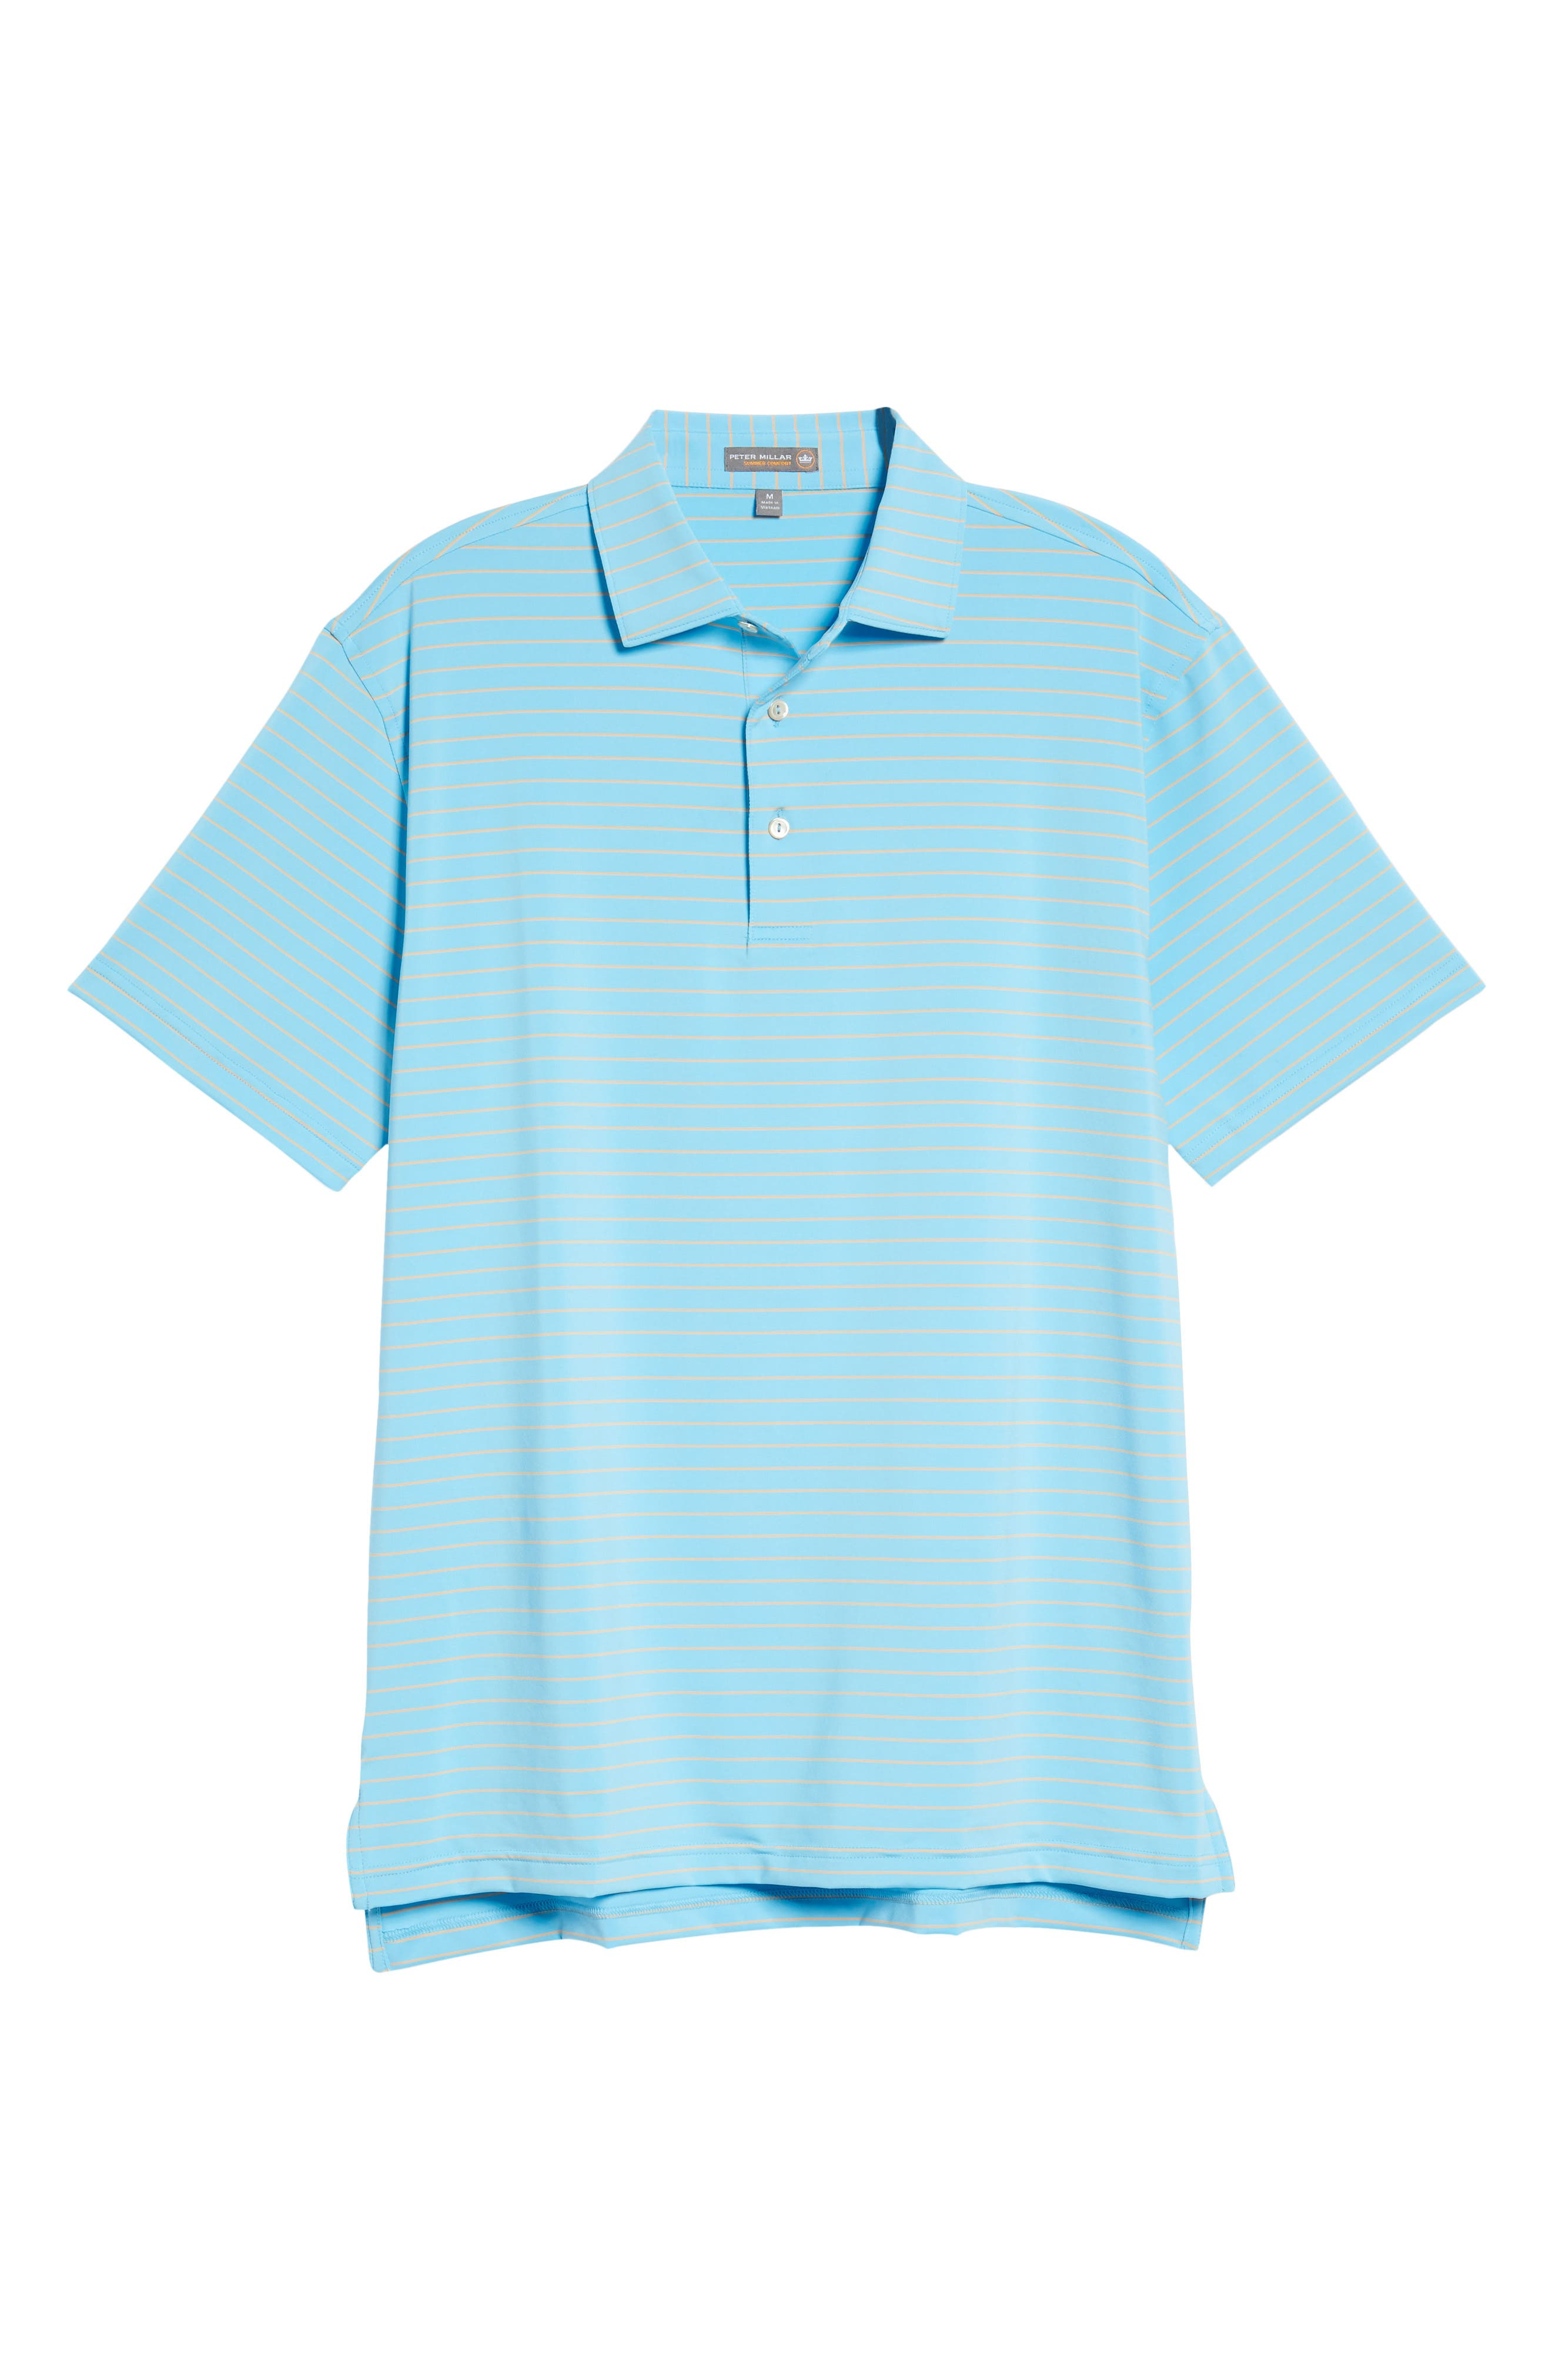 Halifax Pinstripe Stretch Jersey Polo,                             Alternate thumbnail 6, color,                             477